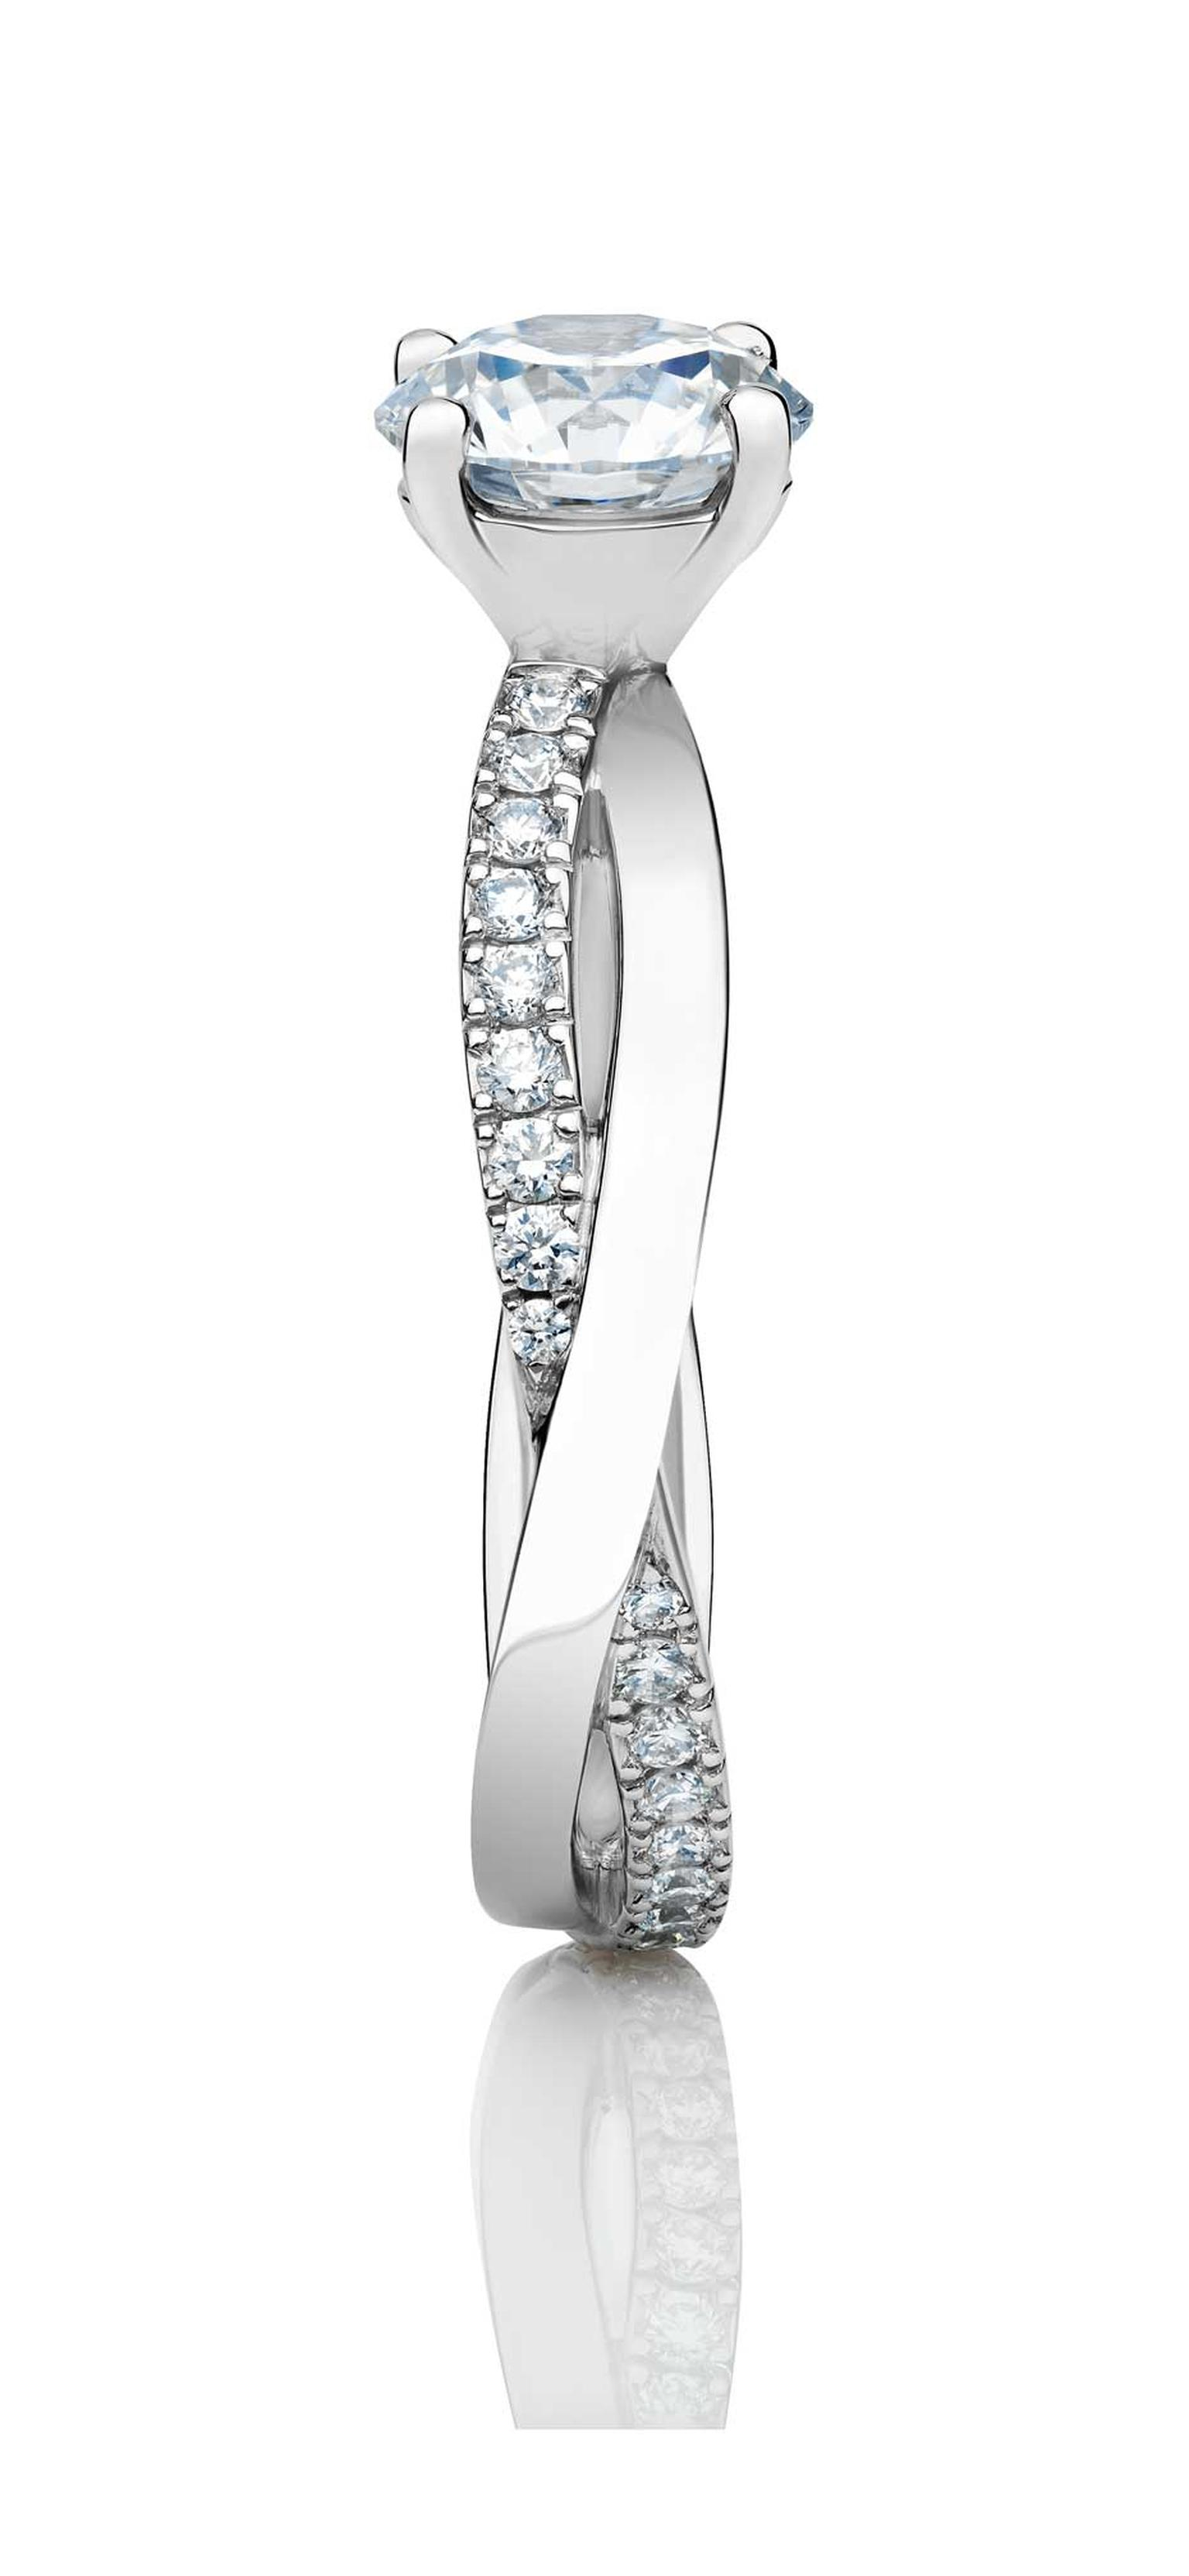 The new De Beers Infinity round diamond engagement ring is topped with a round brilliant-cut solitaire diamond.